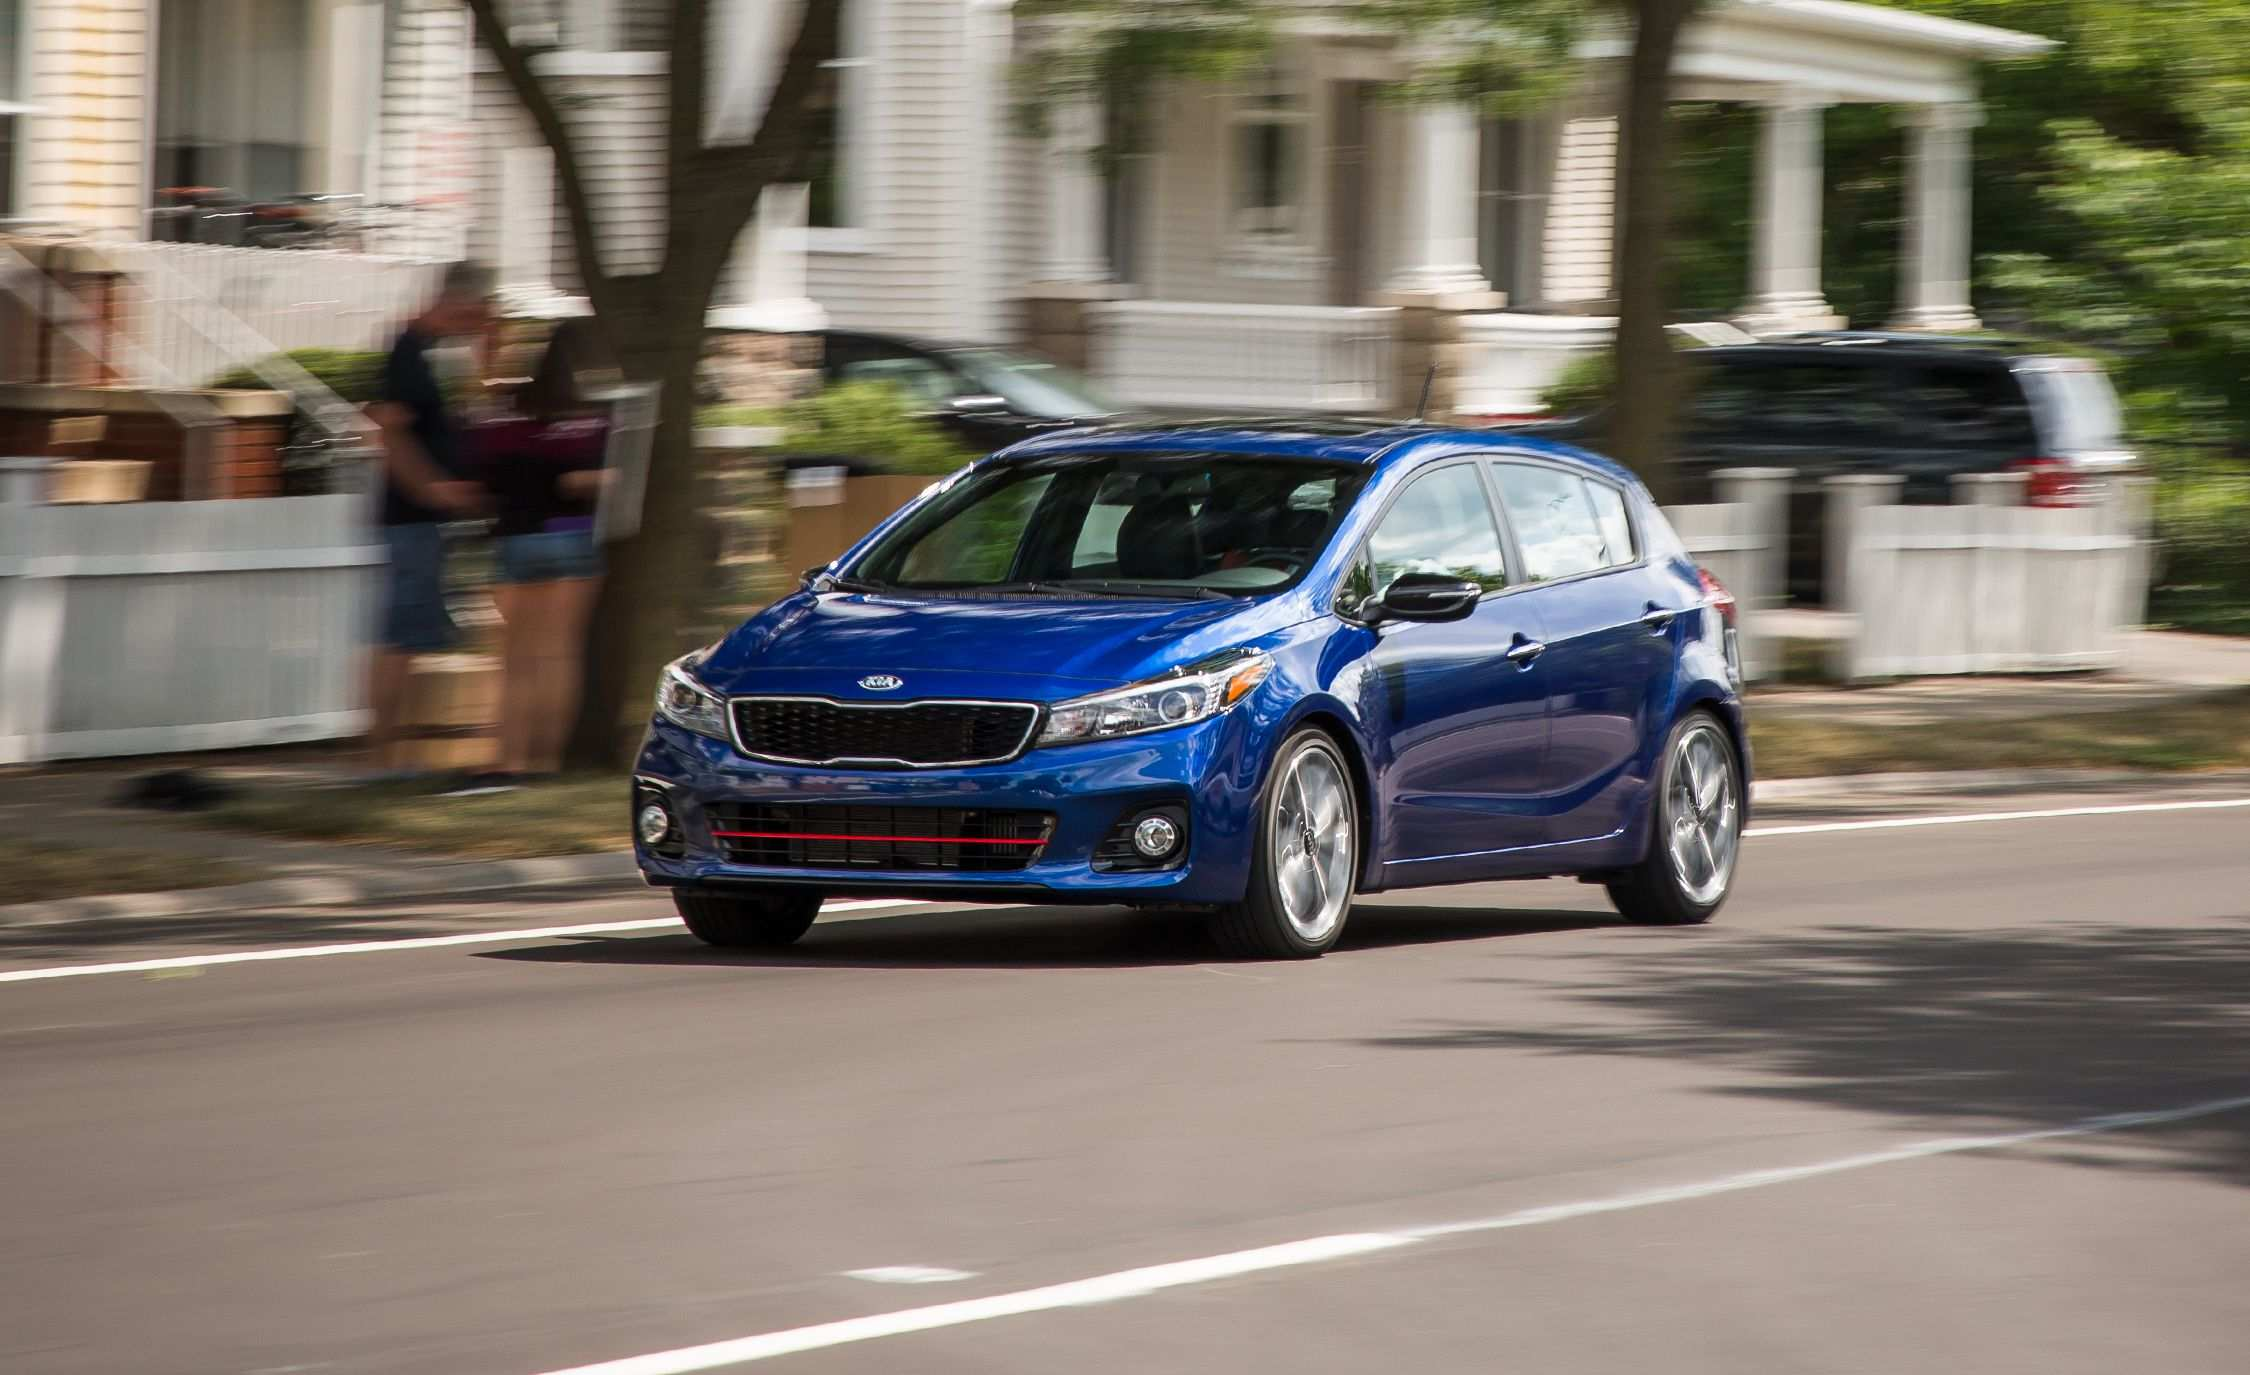 31 Gallery of 2020 Kia Forte5 Hatchback Rumors by 2020 Kia Forte5 Hatchback